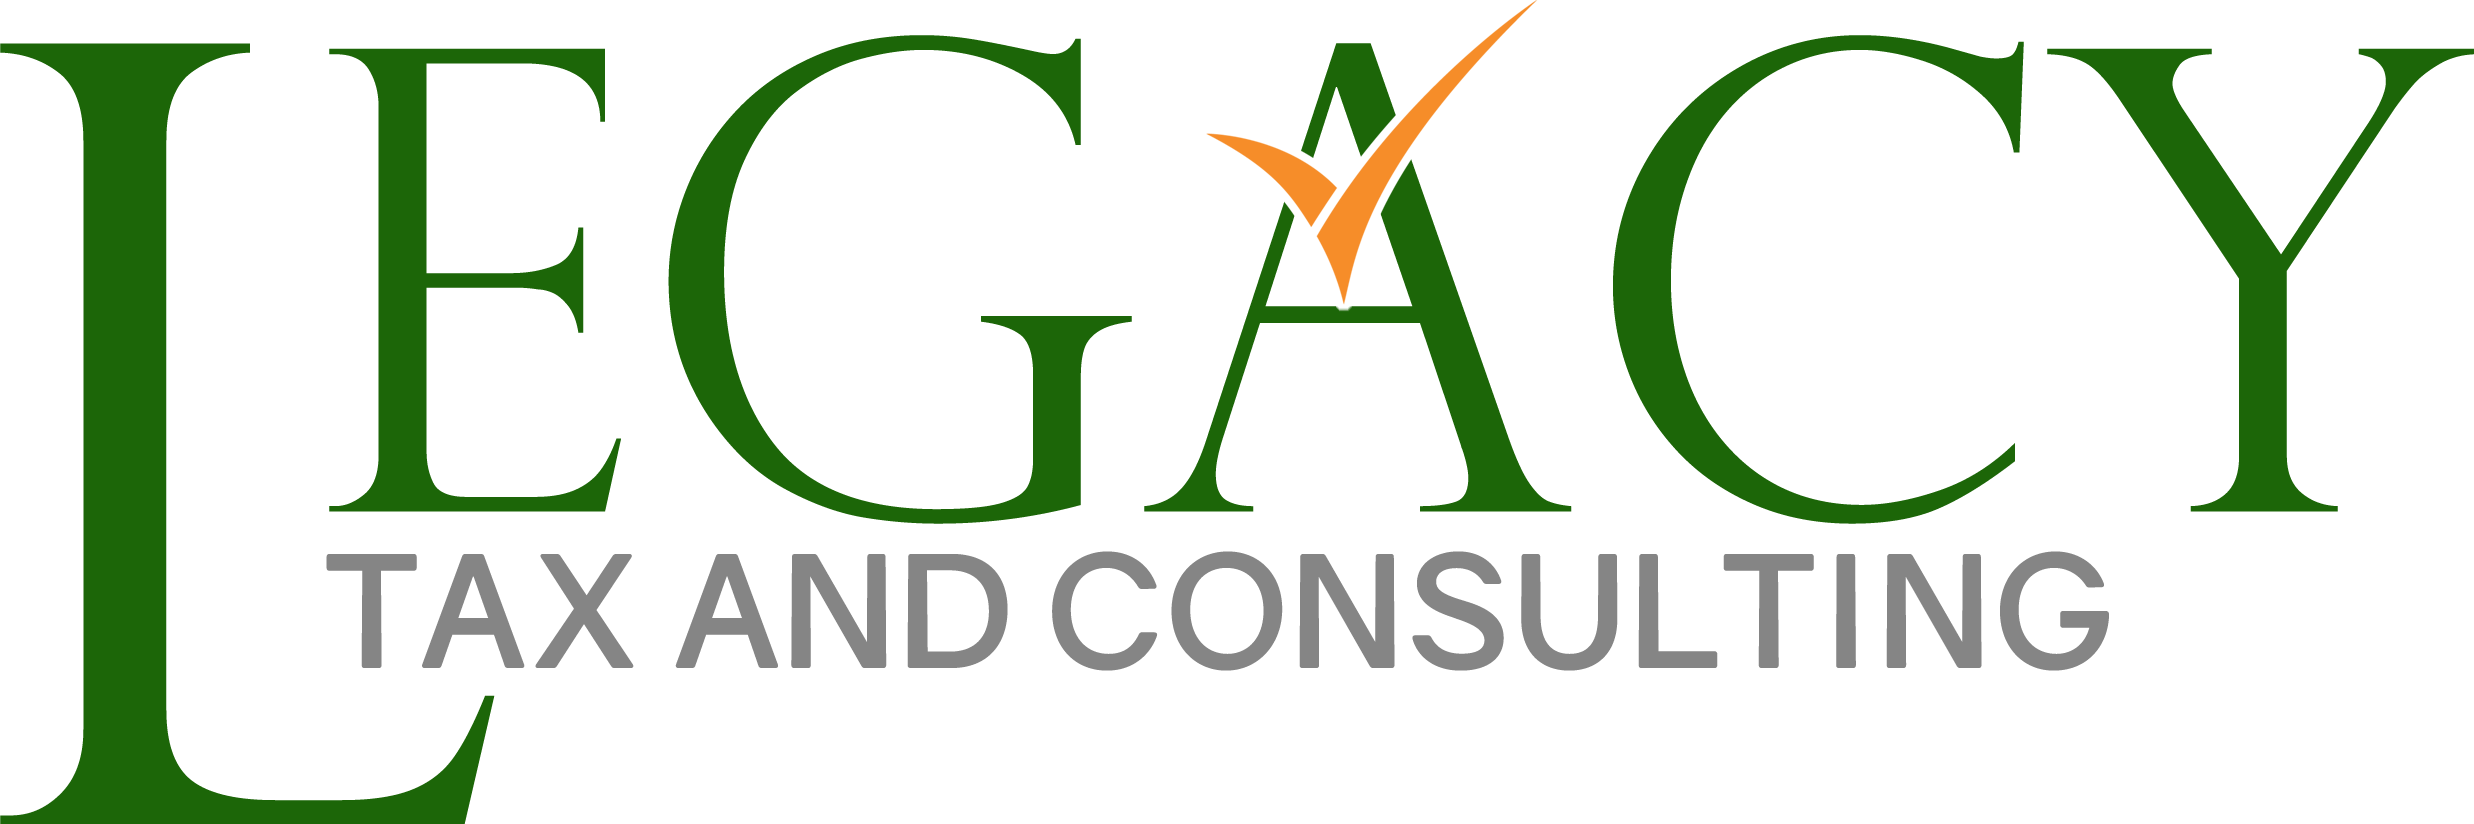 Legacy Tax and Consulting